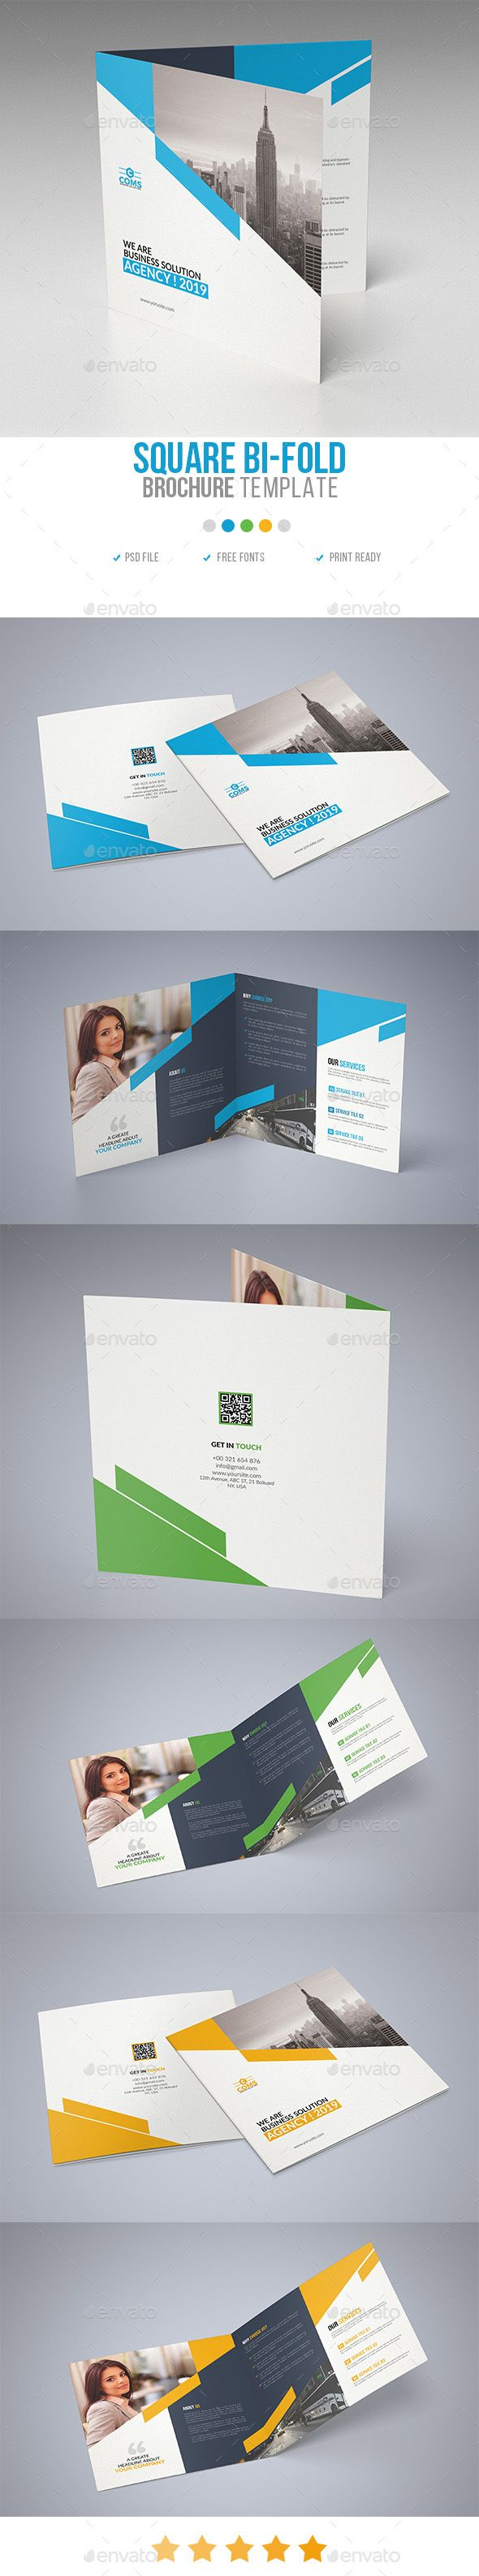 Best Bi Fold Brochure Ideas On Pinterest Tri Fold Brochure - Bi fold brochure template free